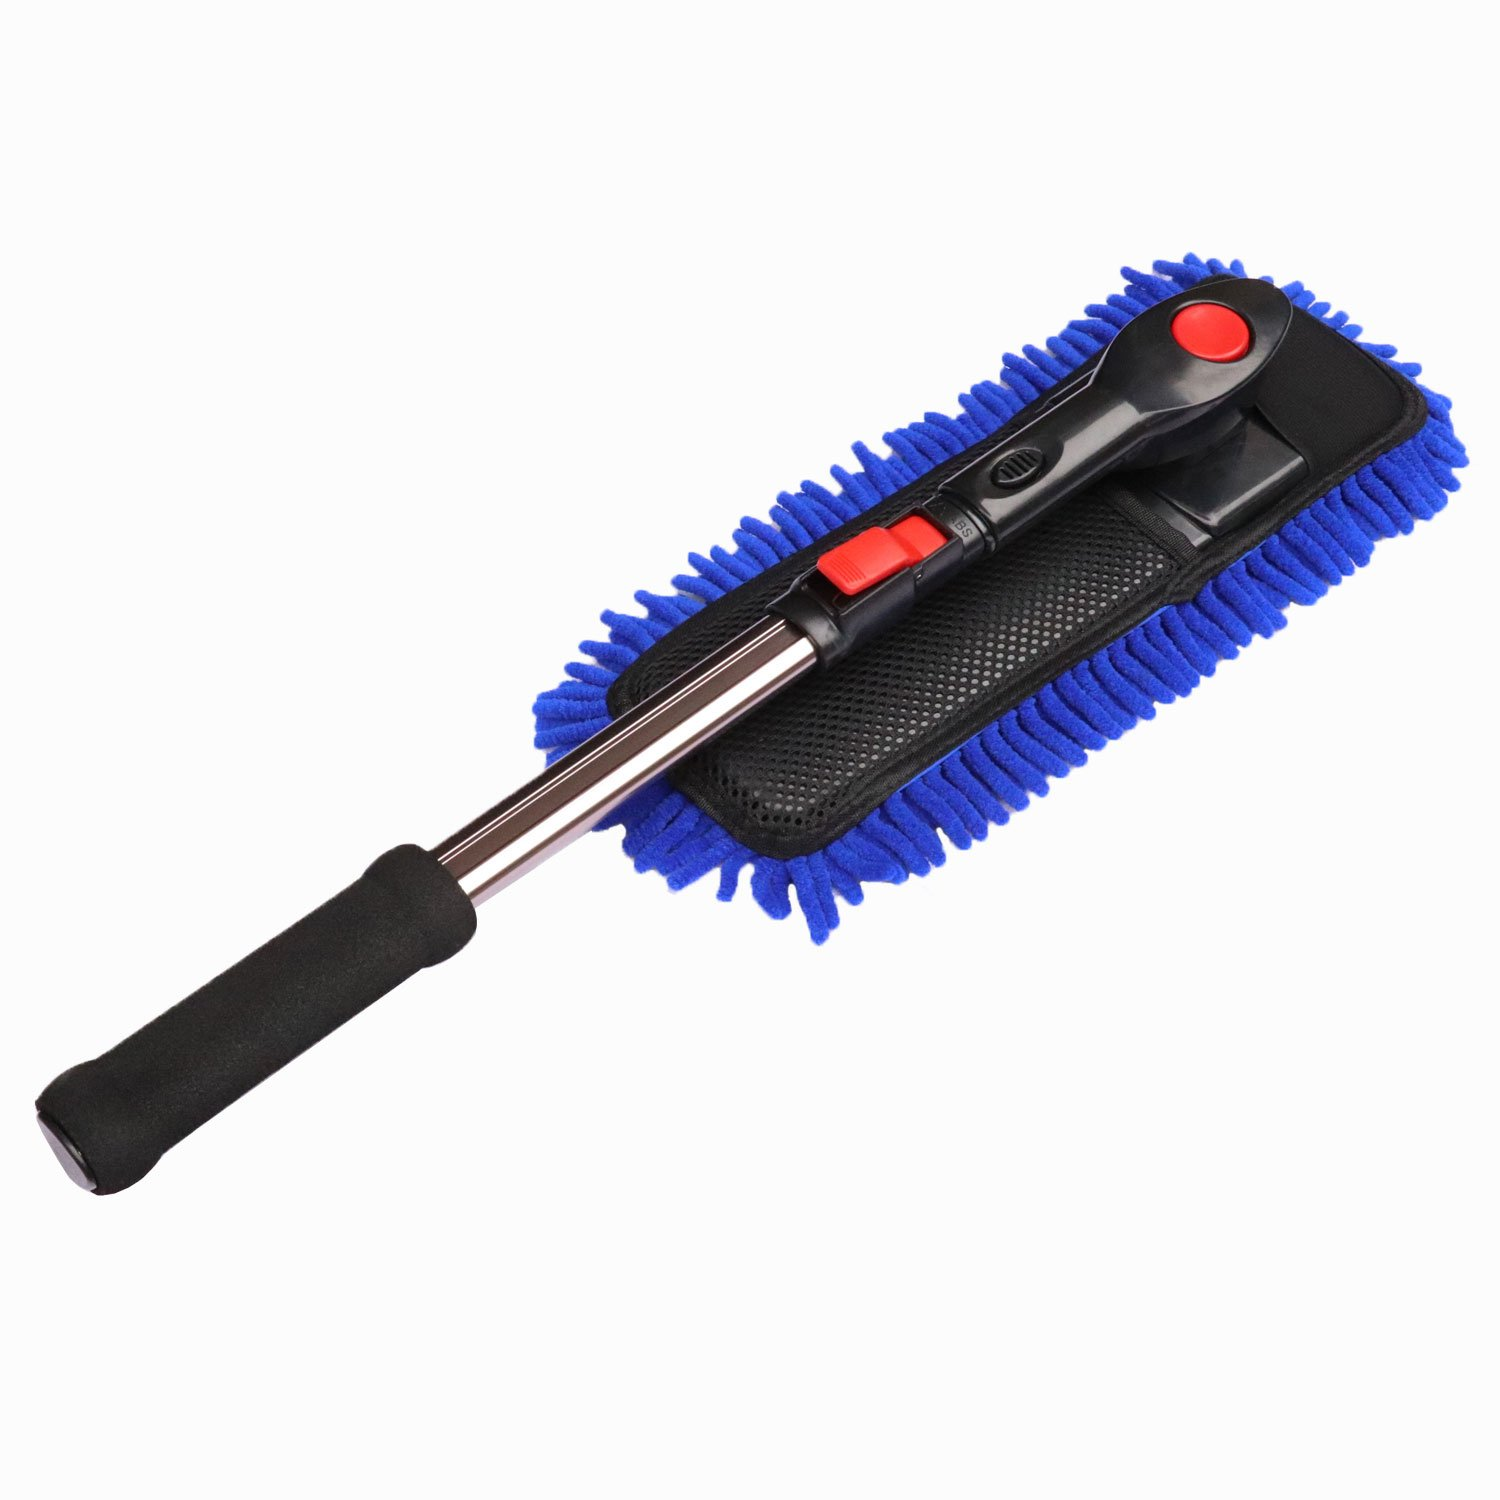 clystorm Car Cleaning Wash Brush Duster Microfiber Brush Telescopic Long Handle for Car SUV Caravan Van Window, Scratch-Free, Lint-Free, Extendable